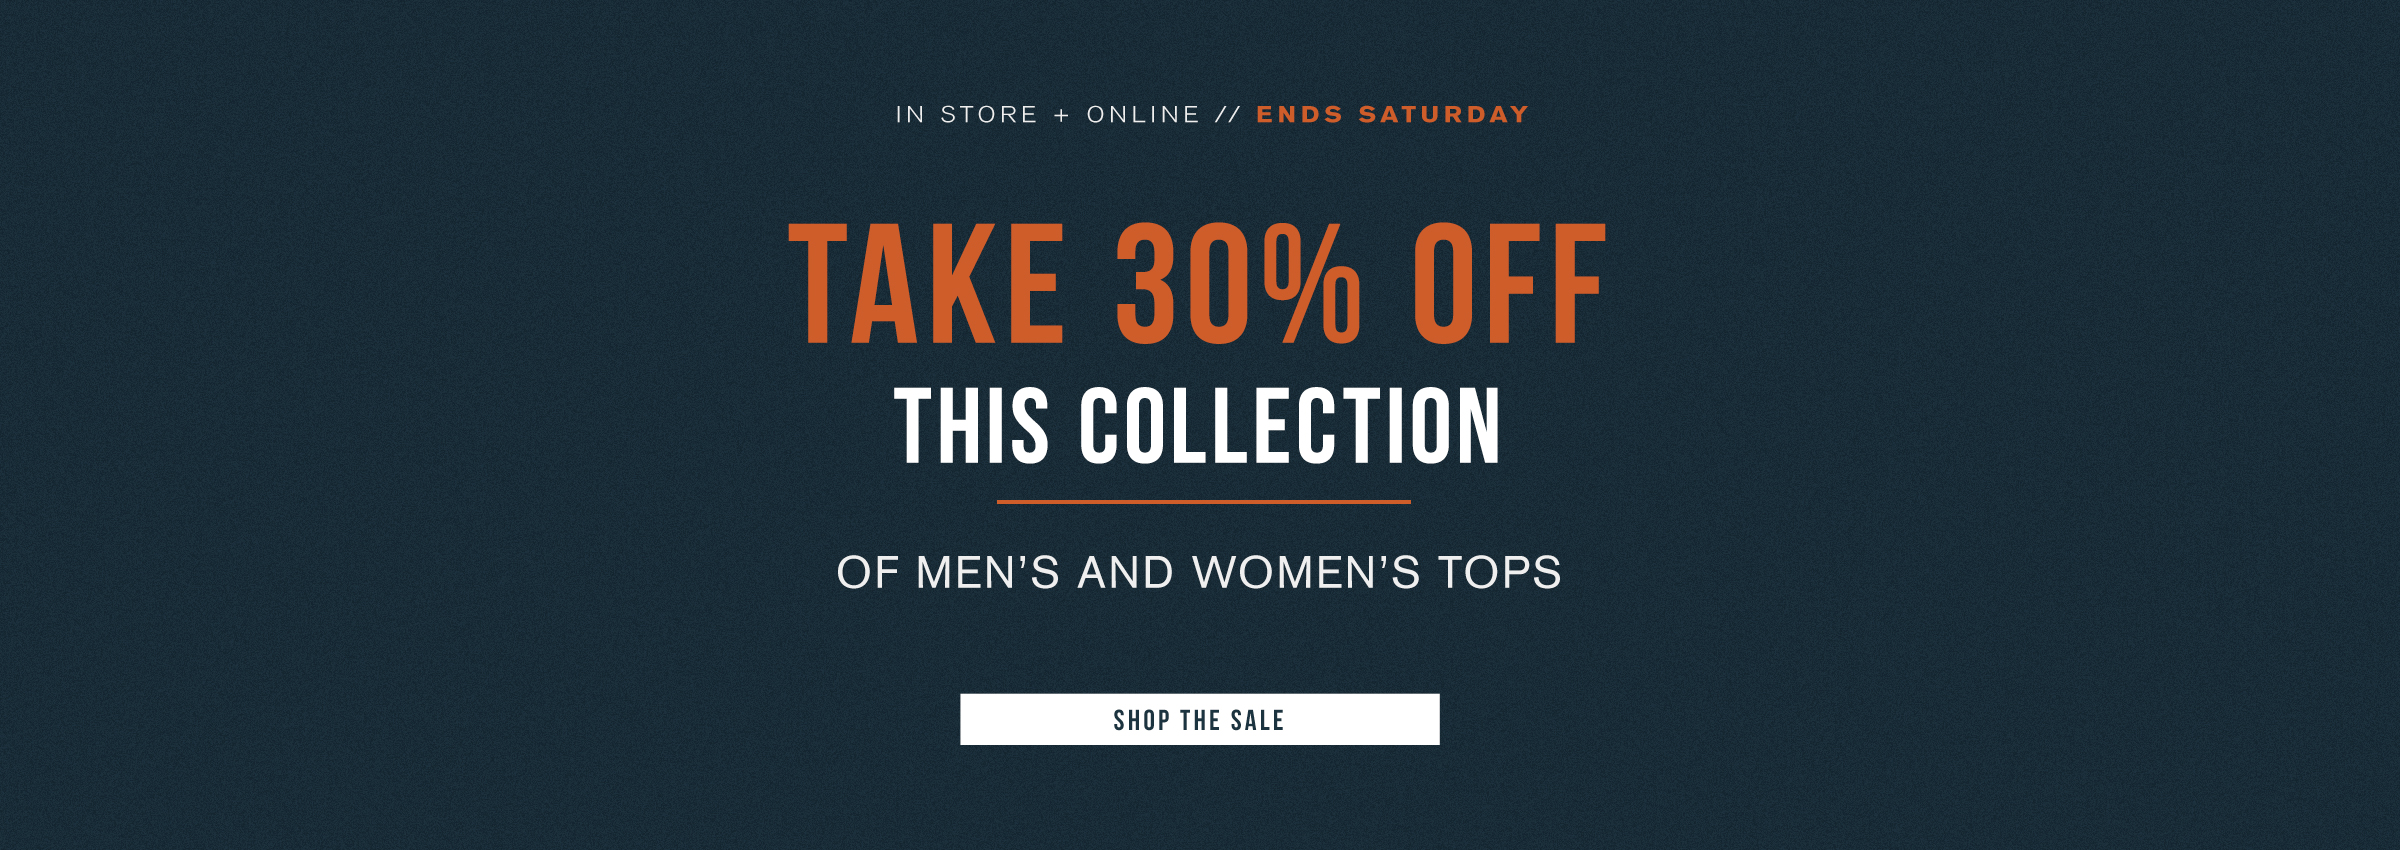 TAKE 30% OFF THIS COLLECTION OF MEN'S AND WOMEN'S TOPS